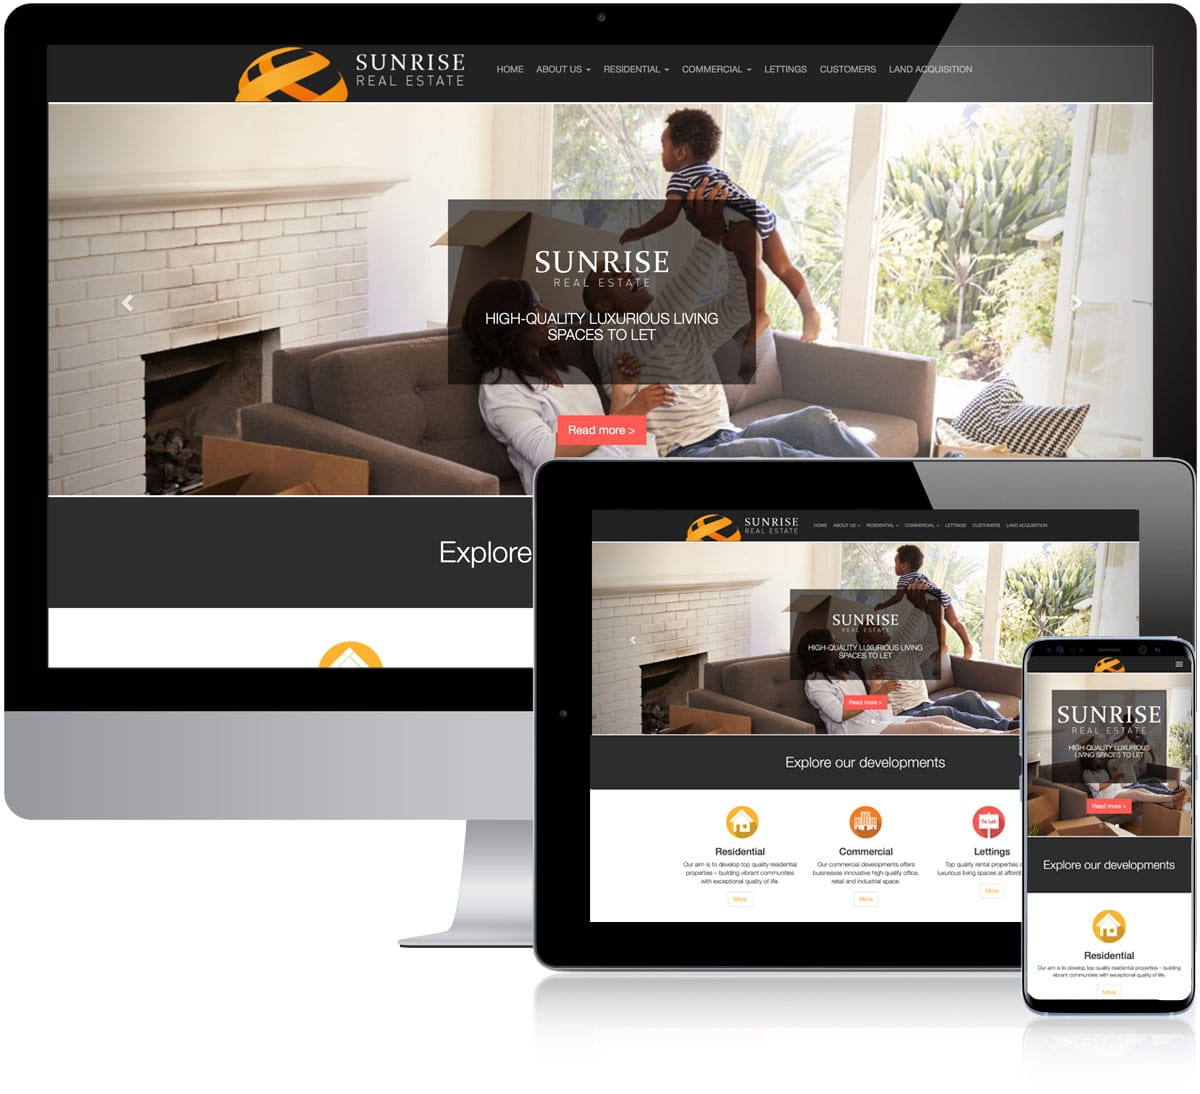 Website design for Sunrise Real Estate